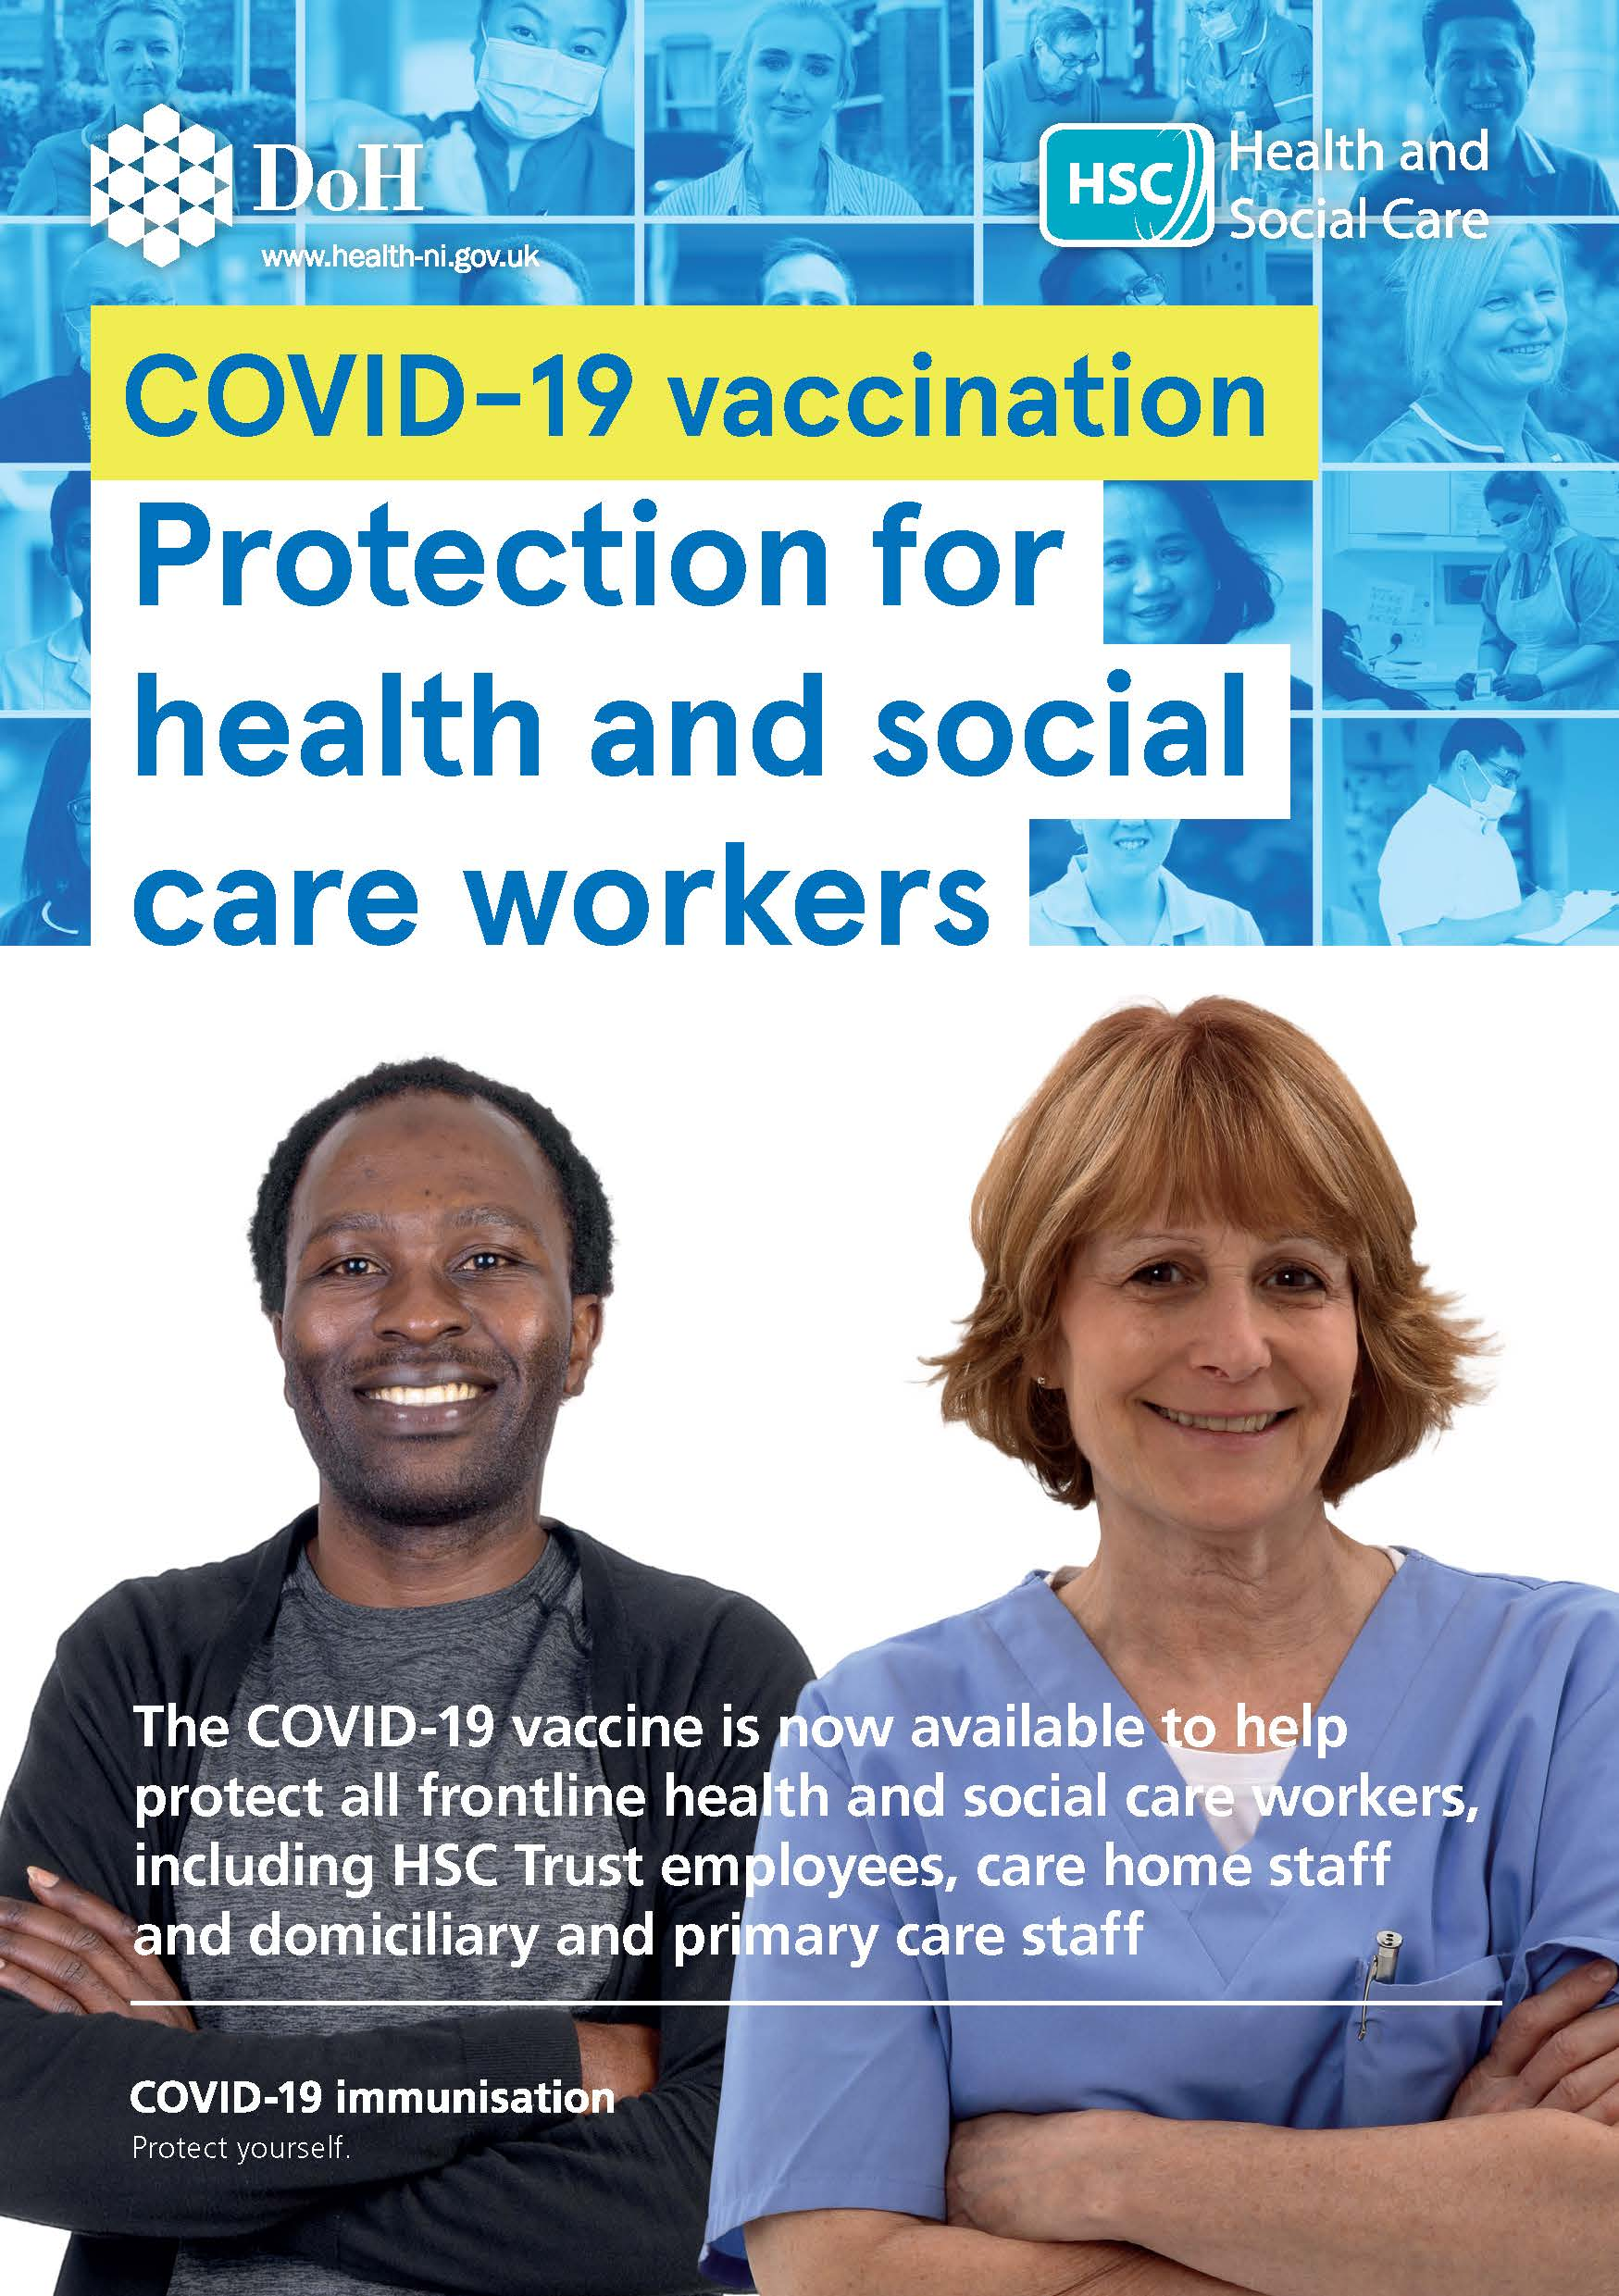 COVID-19 vaccination information for health and social care workers leaflet image